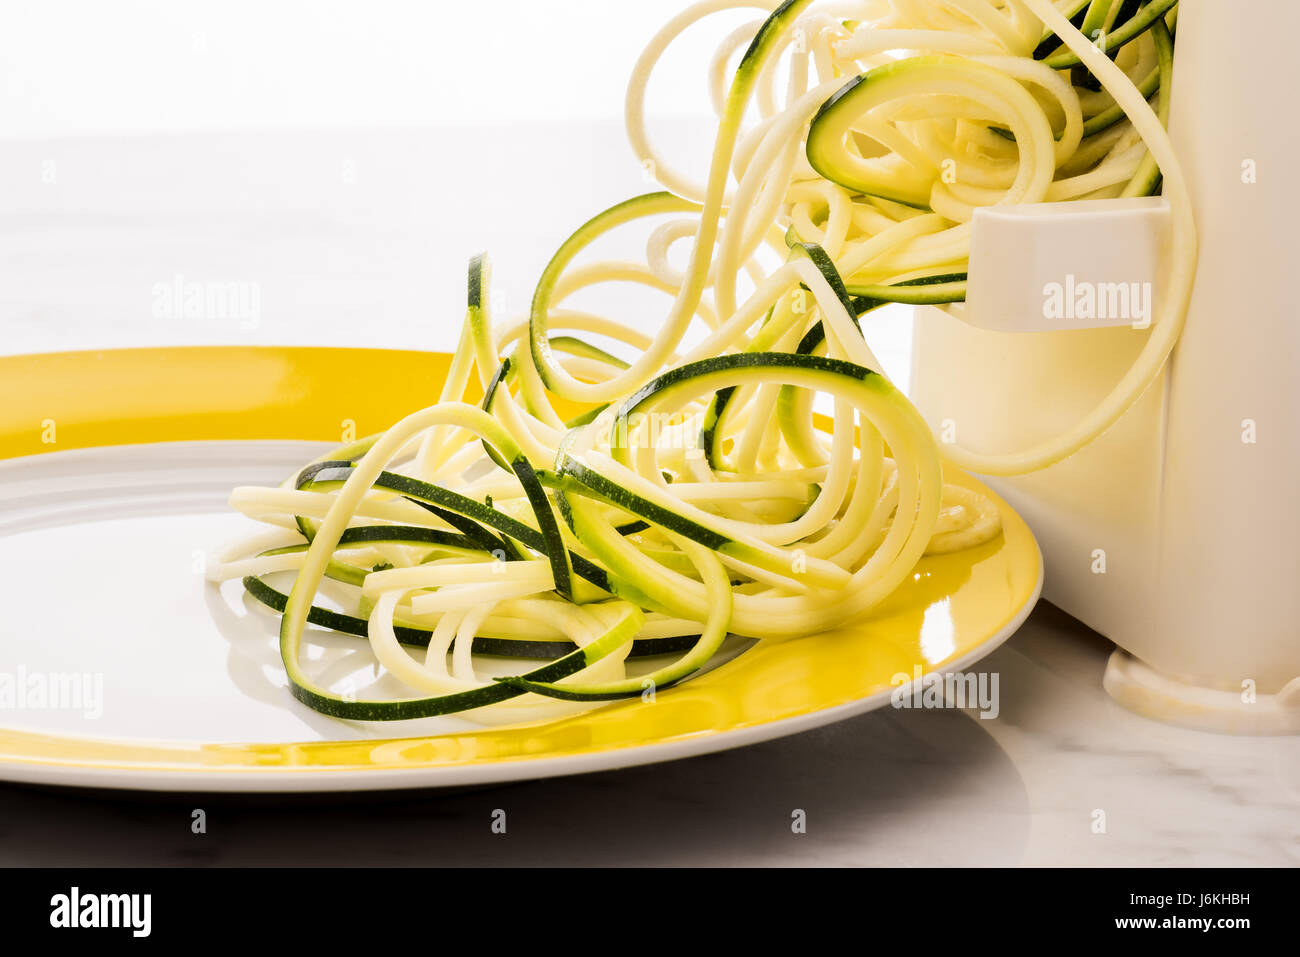 Zoodles making vegetable spaghetti zucchini pasta low carb - Stock Image